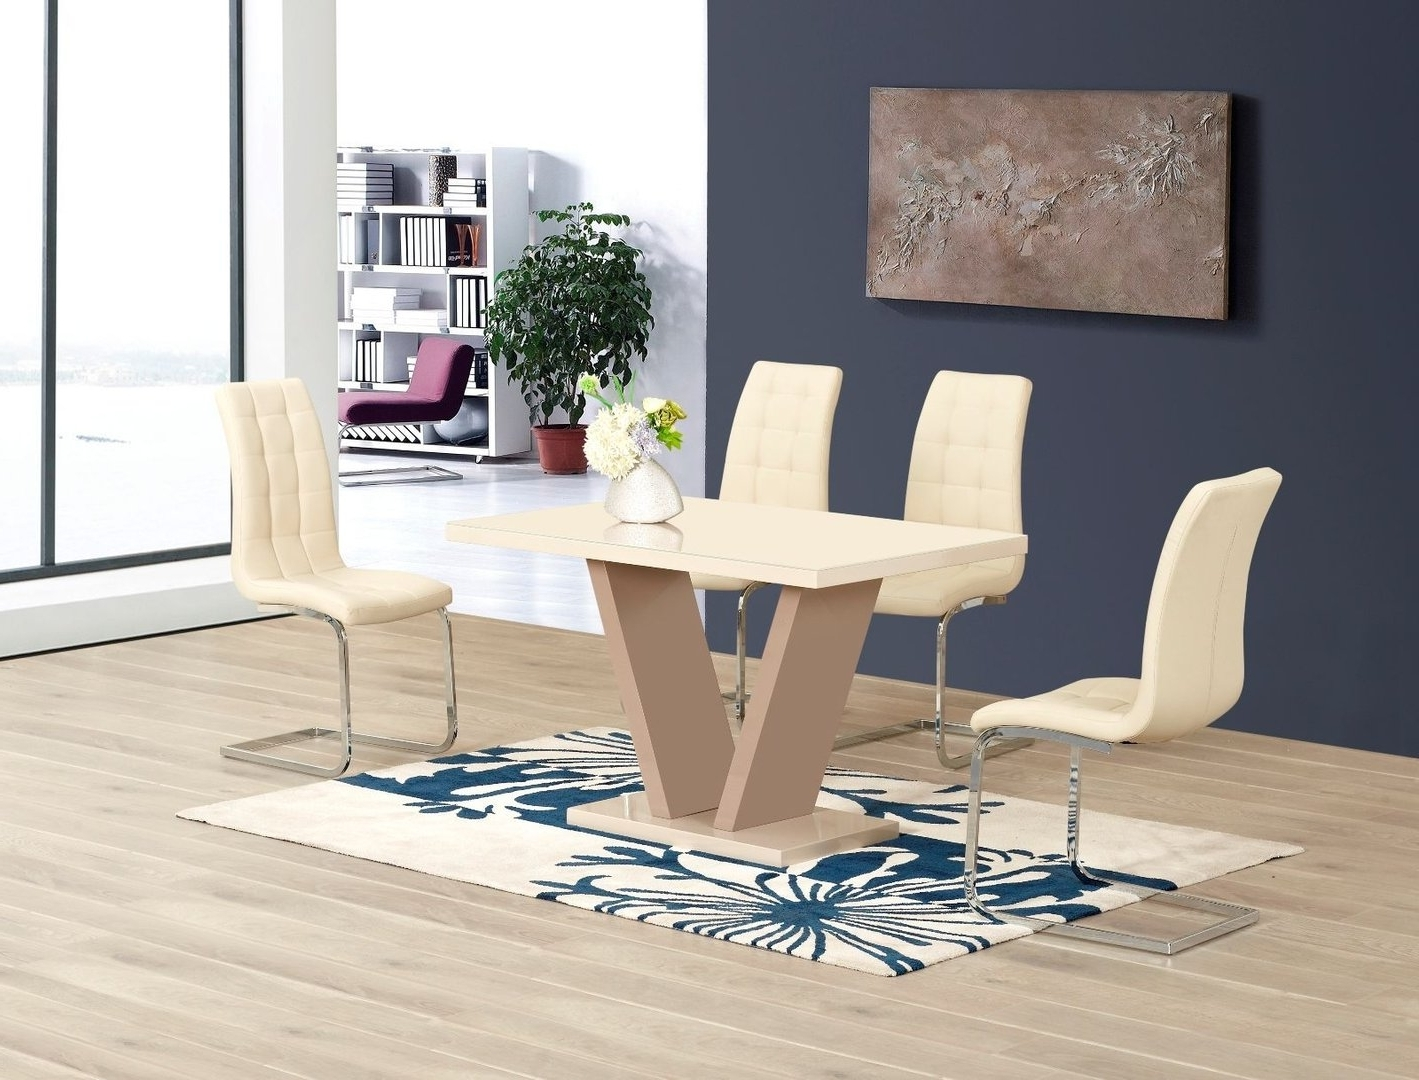 Extendable Dining Tables With 6 Chairs Throughout Well Known Cream High Gloss Glass Dining Table And 6 Chairs – Homegenies (View 12 of 25)